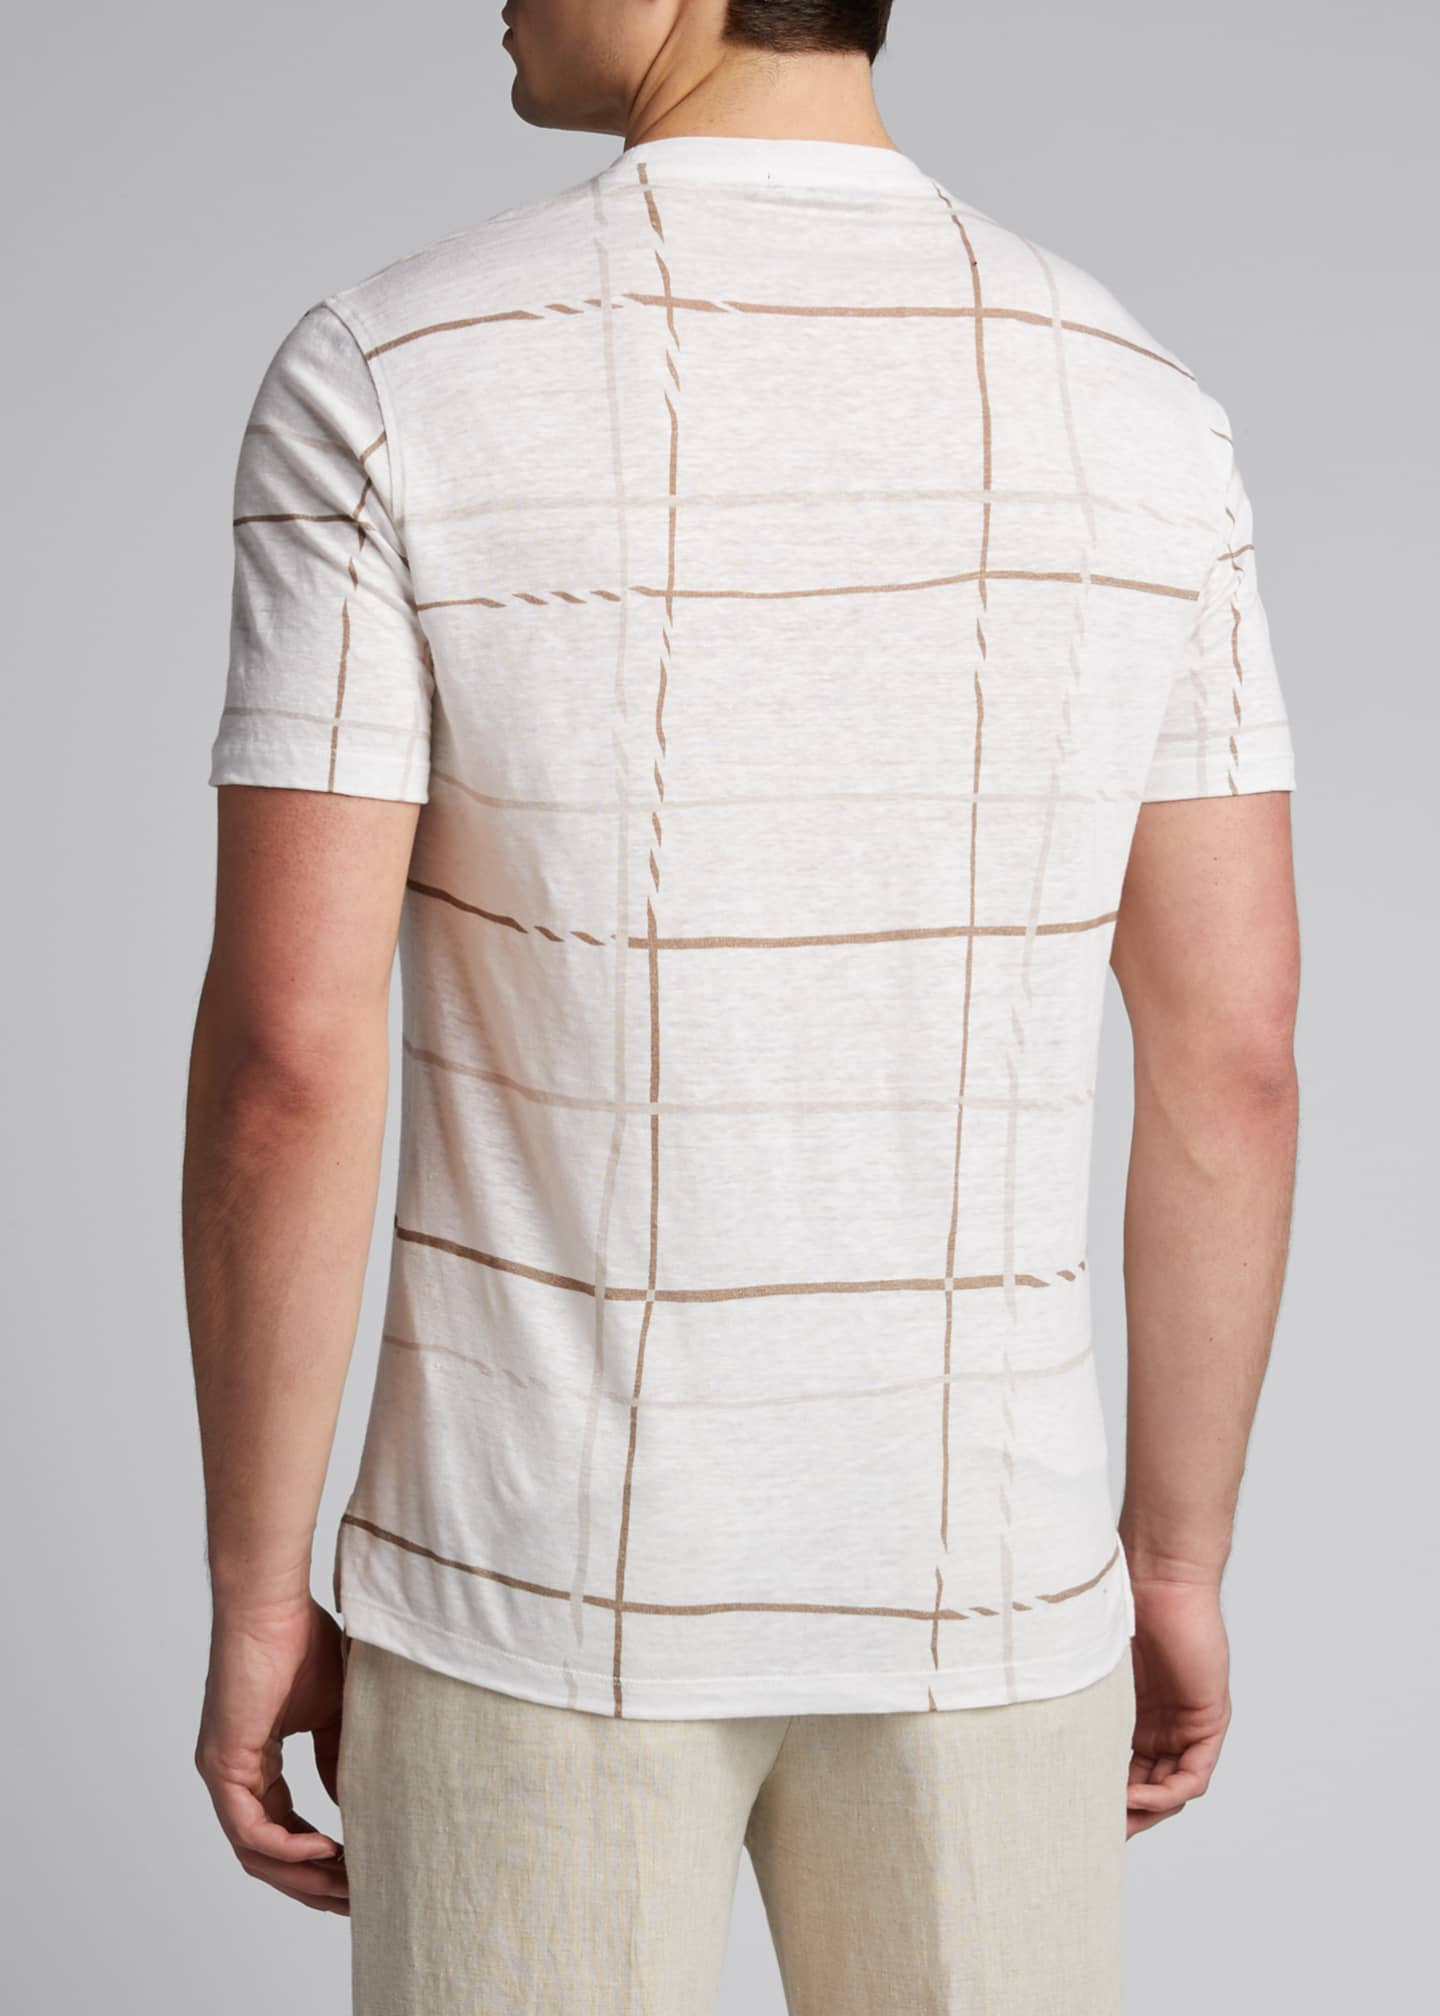 Image 2 of 5: Men's Patterned Regular-Fit Linen T-Shirt